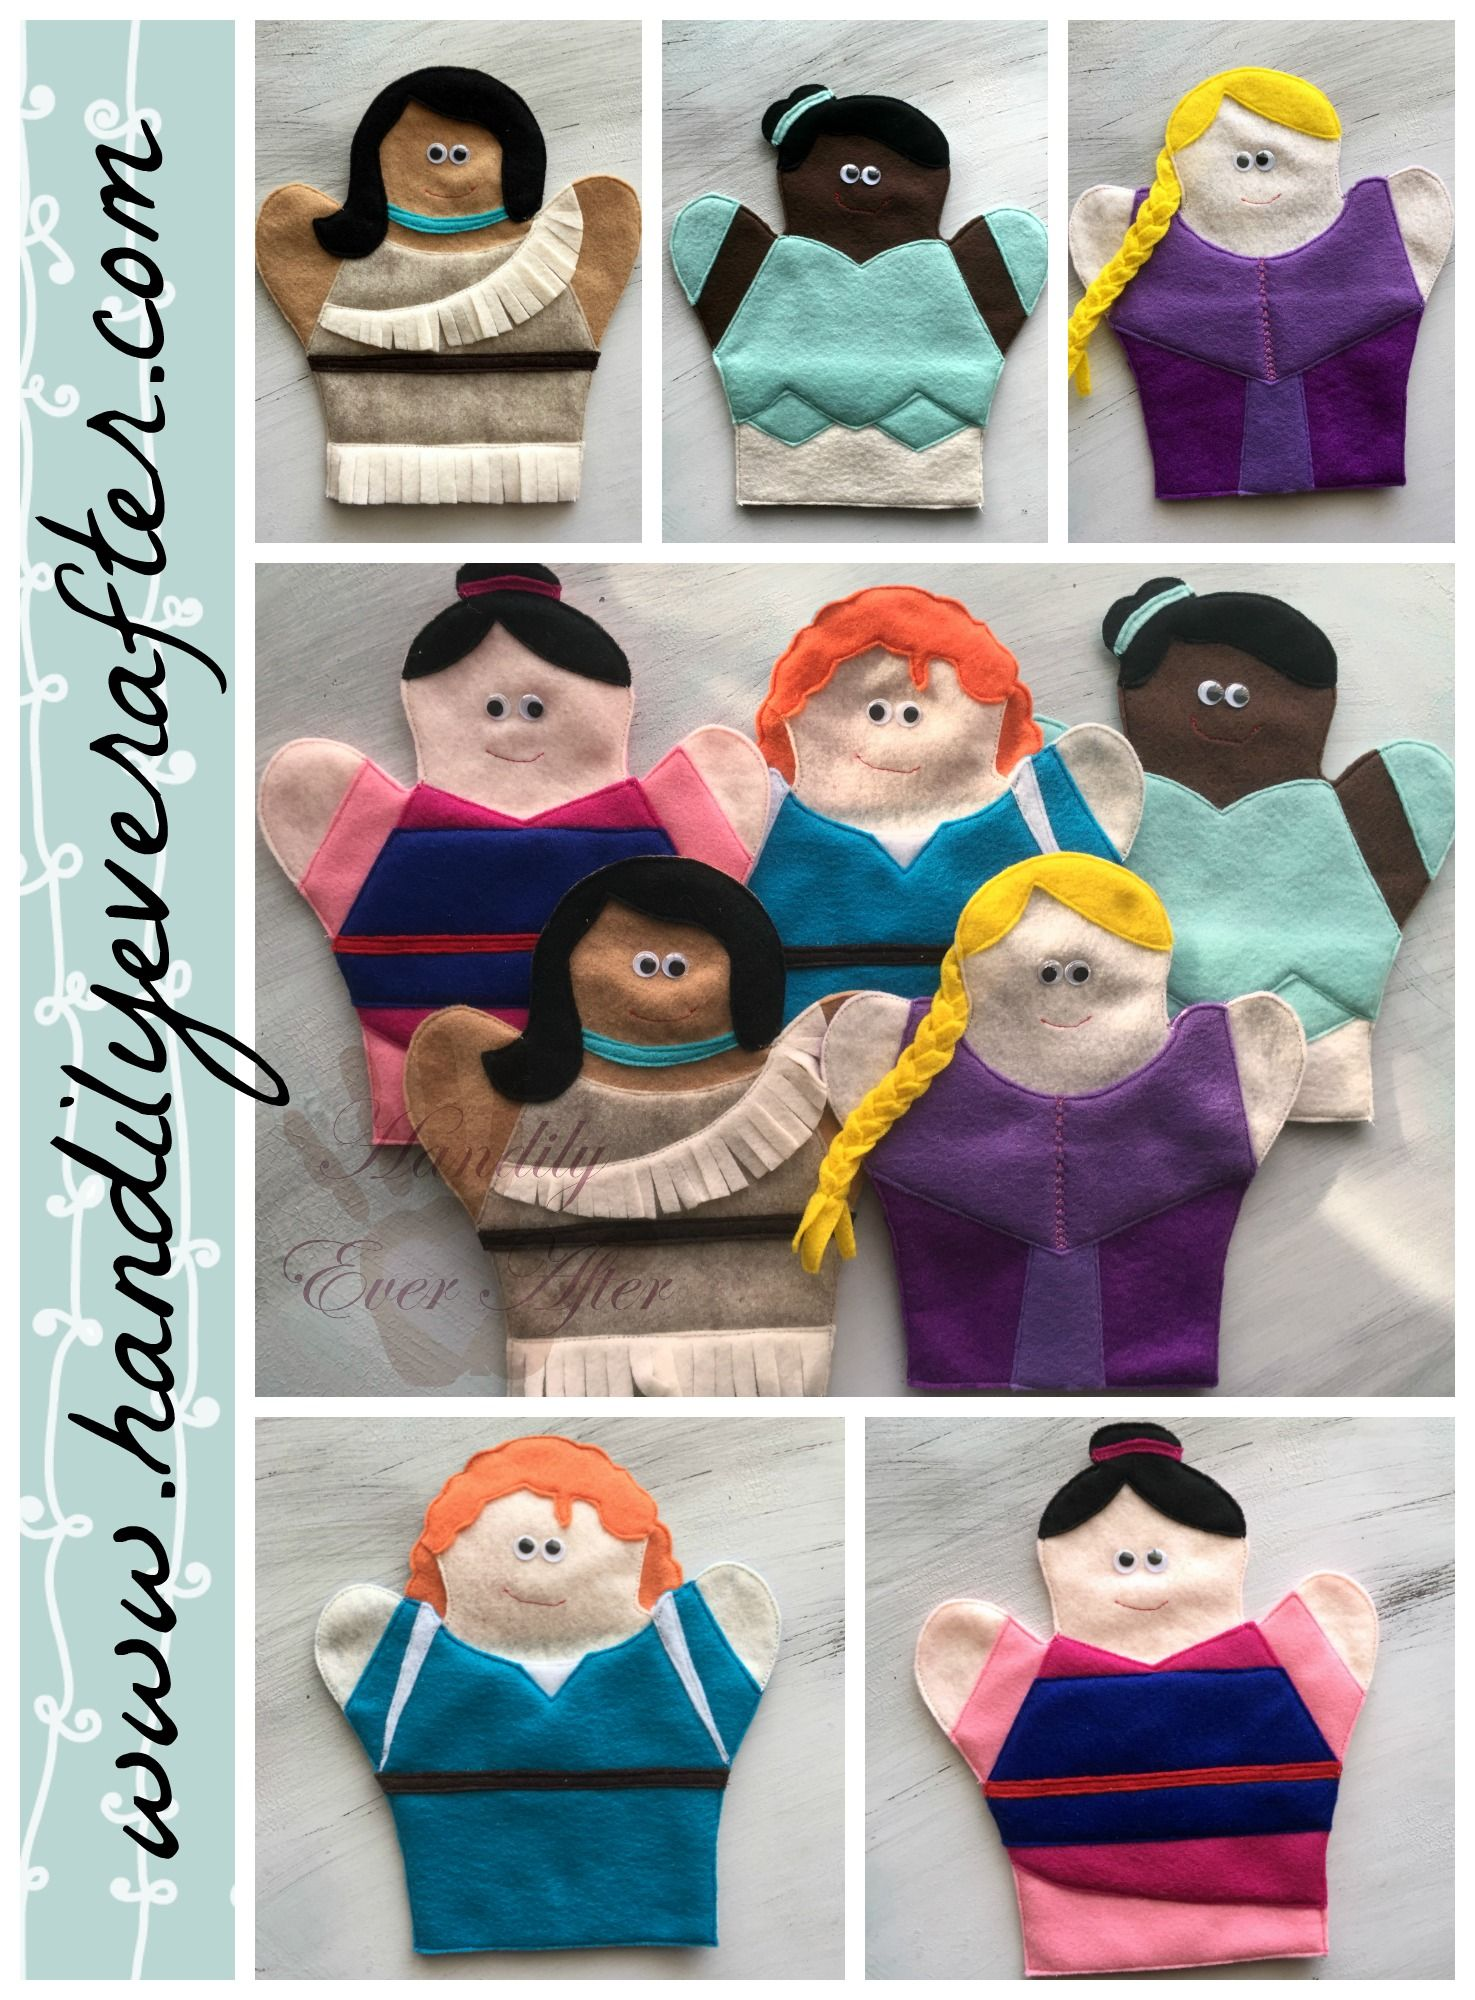 Princess Hand Puppets Set 2-PATTERN ONLY (Instant Download)